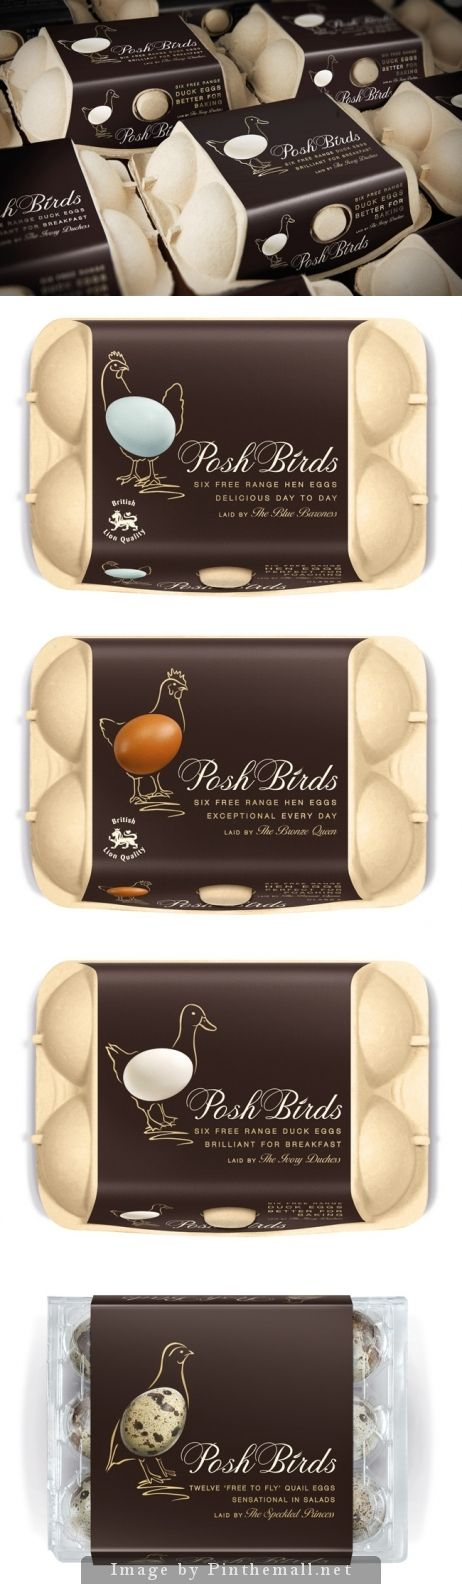 Posh birds just goes to show you that you can create something beautiful out of something as mundane as egg packaging curated by Packaging Diva PD created via http://www.effectivedesign.org.uk/winners/2014/packaging-branded-food/posh-birds